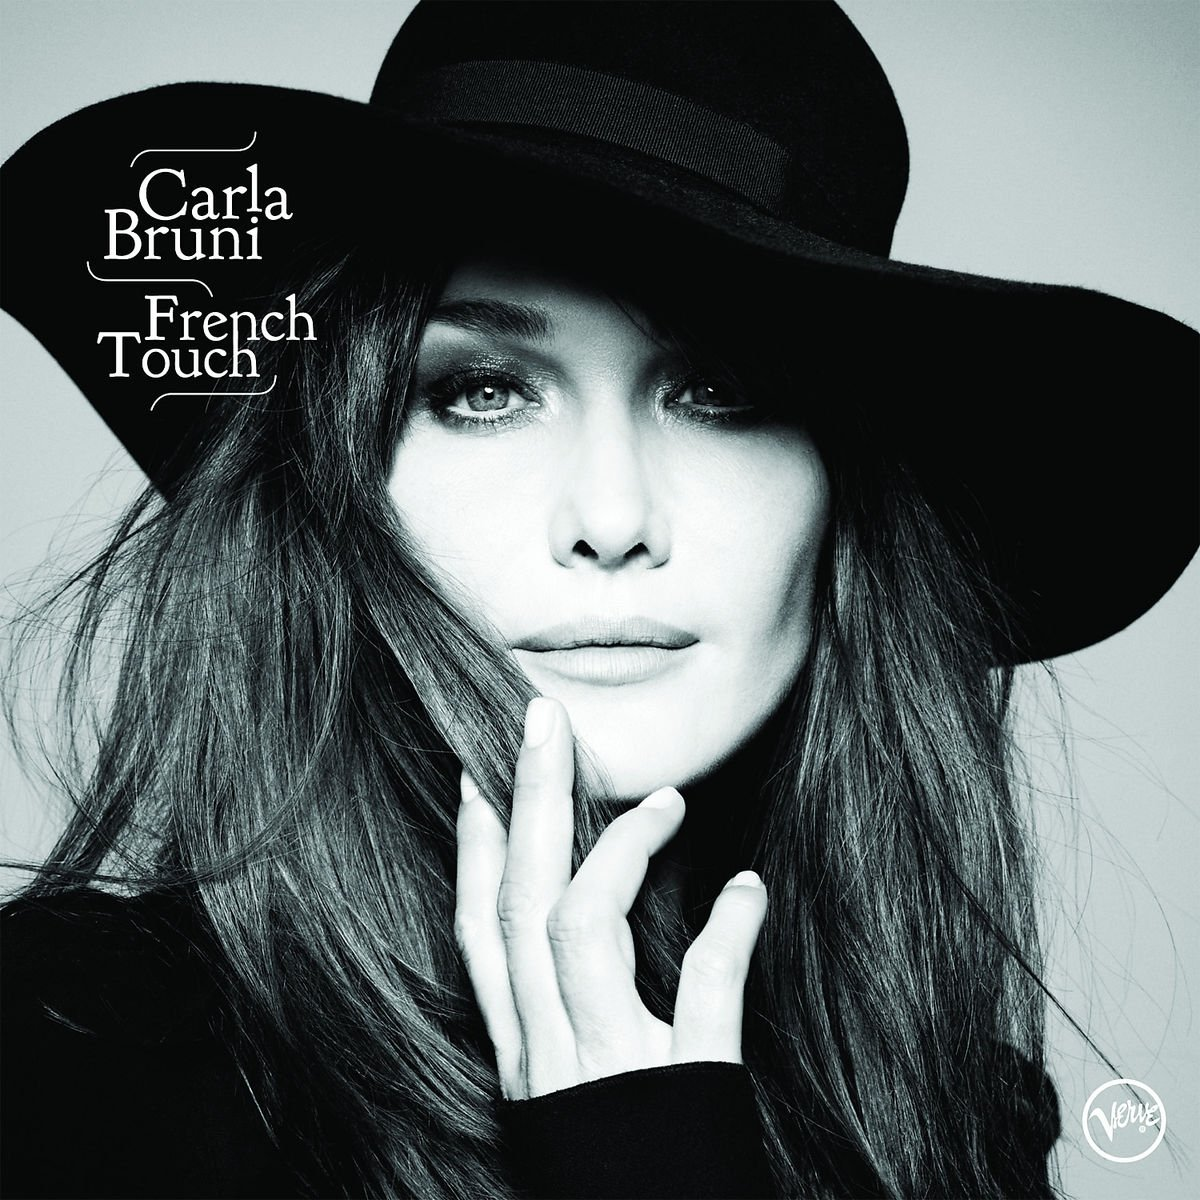 Vinilo : Carla Bruni - French Touch (LP Vinyl)